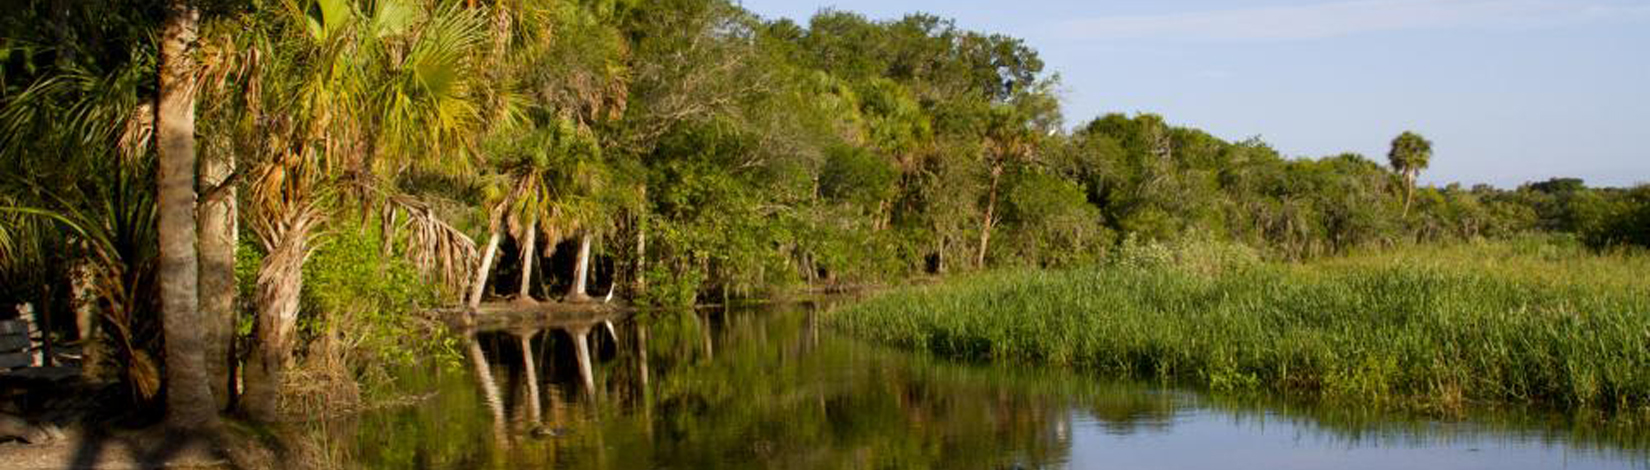 The Myakka River gently flows as it meanders through Myakka River State Park.